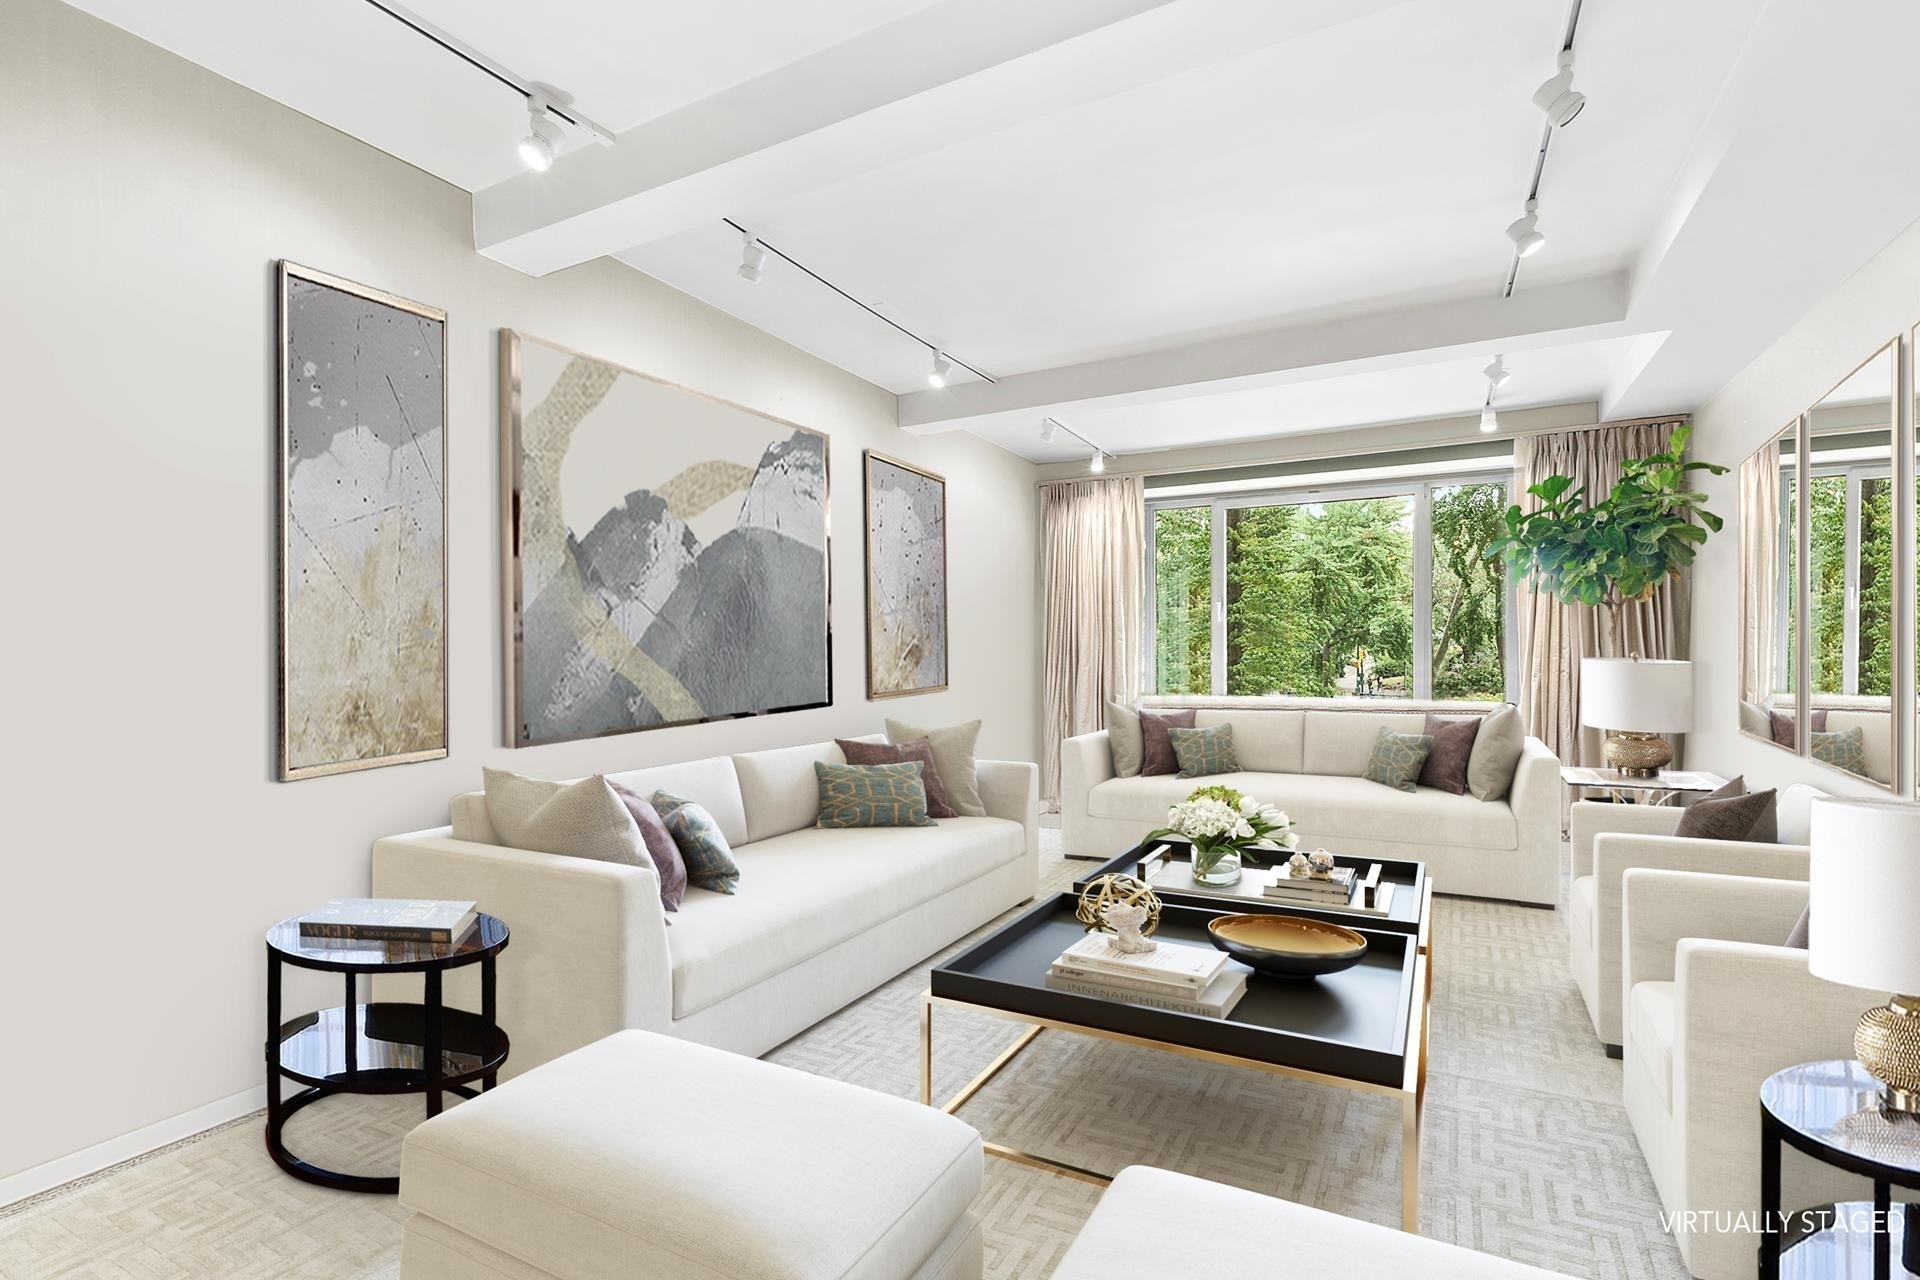 Co-op Properties for Sale at Berkeley House, 120 CENTRAL PARK S, 2DE Central Park South, New York, NY 10019